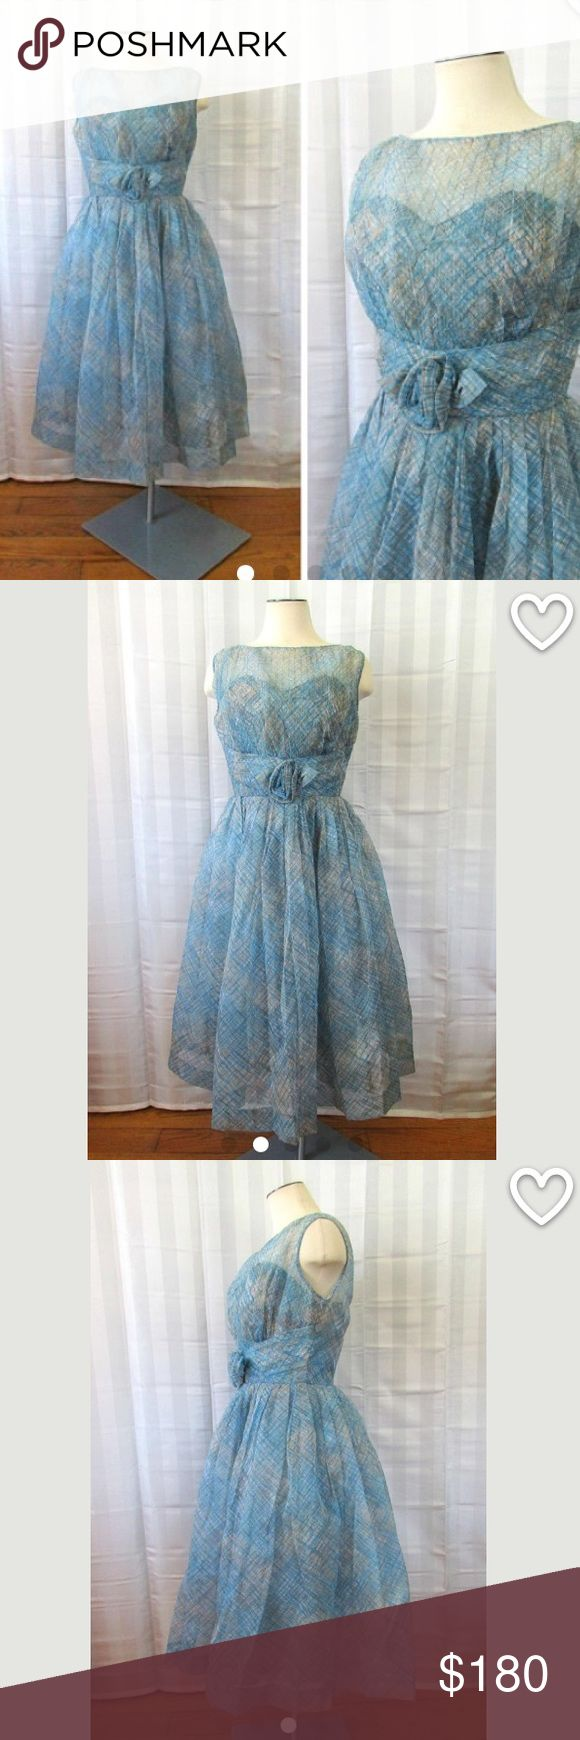 Vintage party dress 1950s prom frock blue 36 bust Pretty vintage party dress from the 50s, perfect for a formal. Sweetheart neckline with an overlay of sheer pleated fabric, with a fine net lining above the bust. 3-d flower. 3 layers-the top layer is a sheer fabric, possibly a rayon, the skirt has an under layer of white tulle. The bodice and skirt has a layer of soft taffeta like fabric as the final bottom layer.   Bust is 36 in. Waist is 28in. Hips open to 52 in. Length is 42 in. Long…